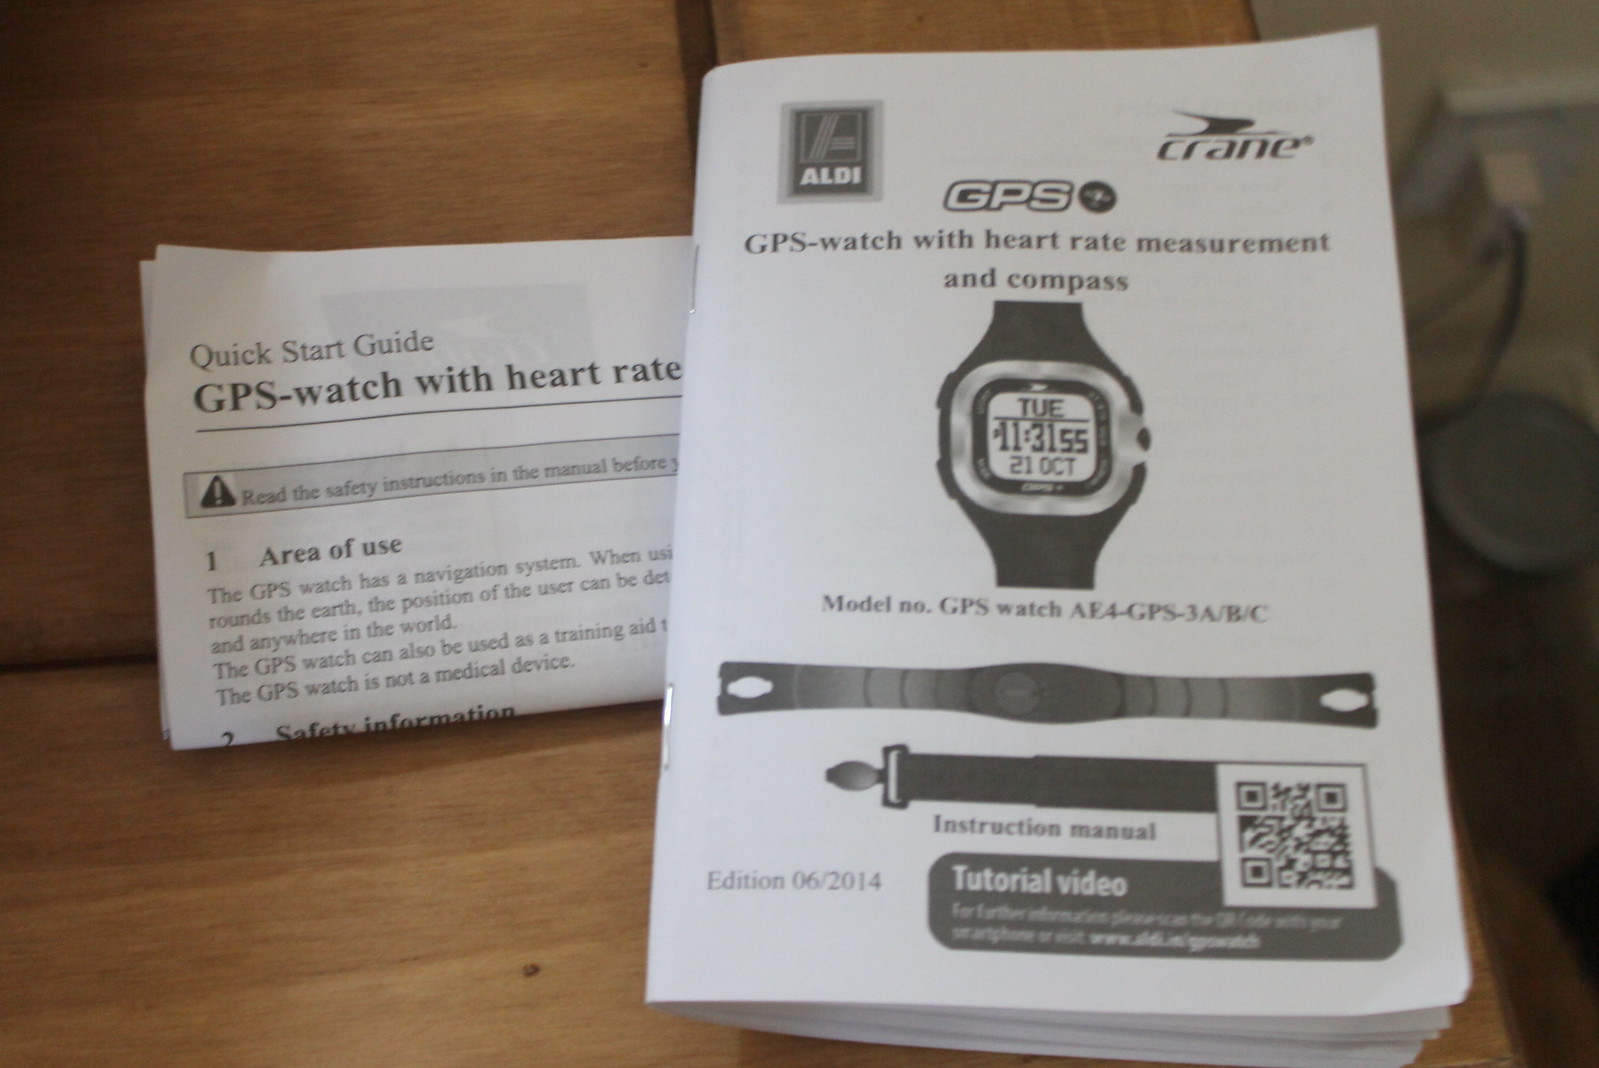 Aldi GPS watch manual